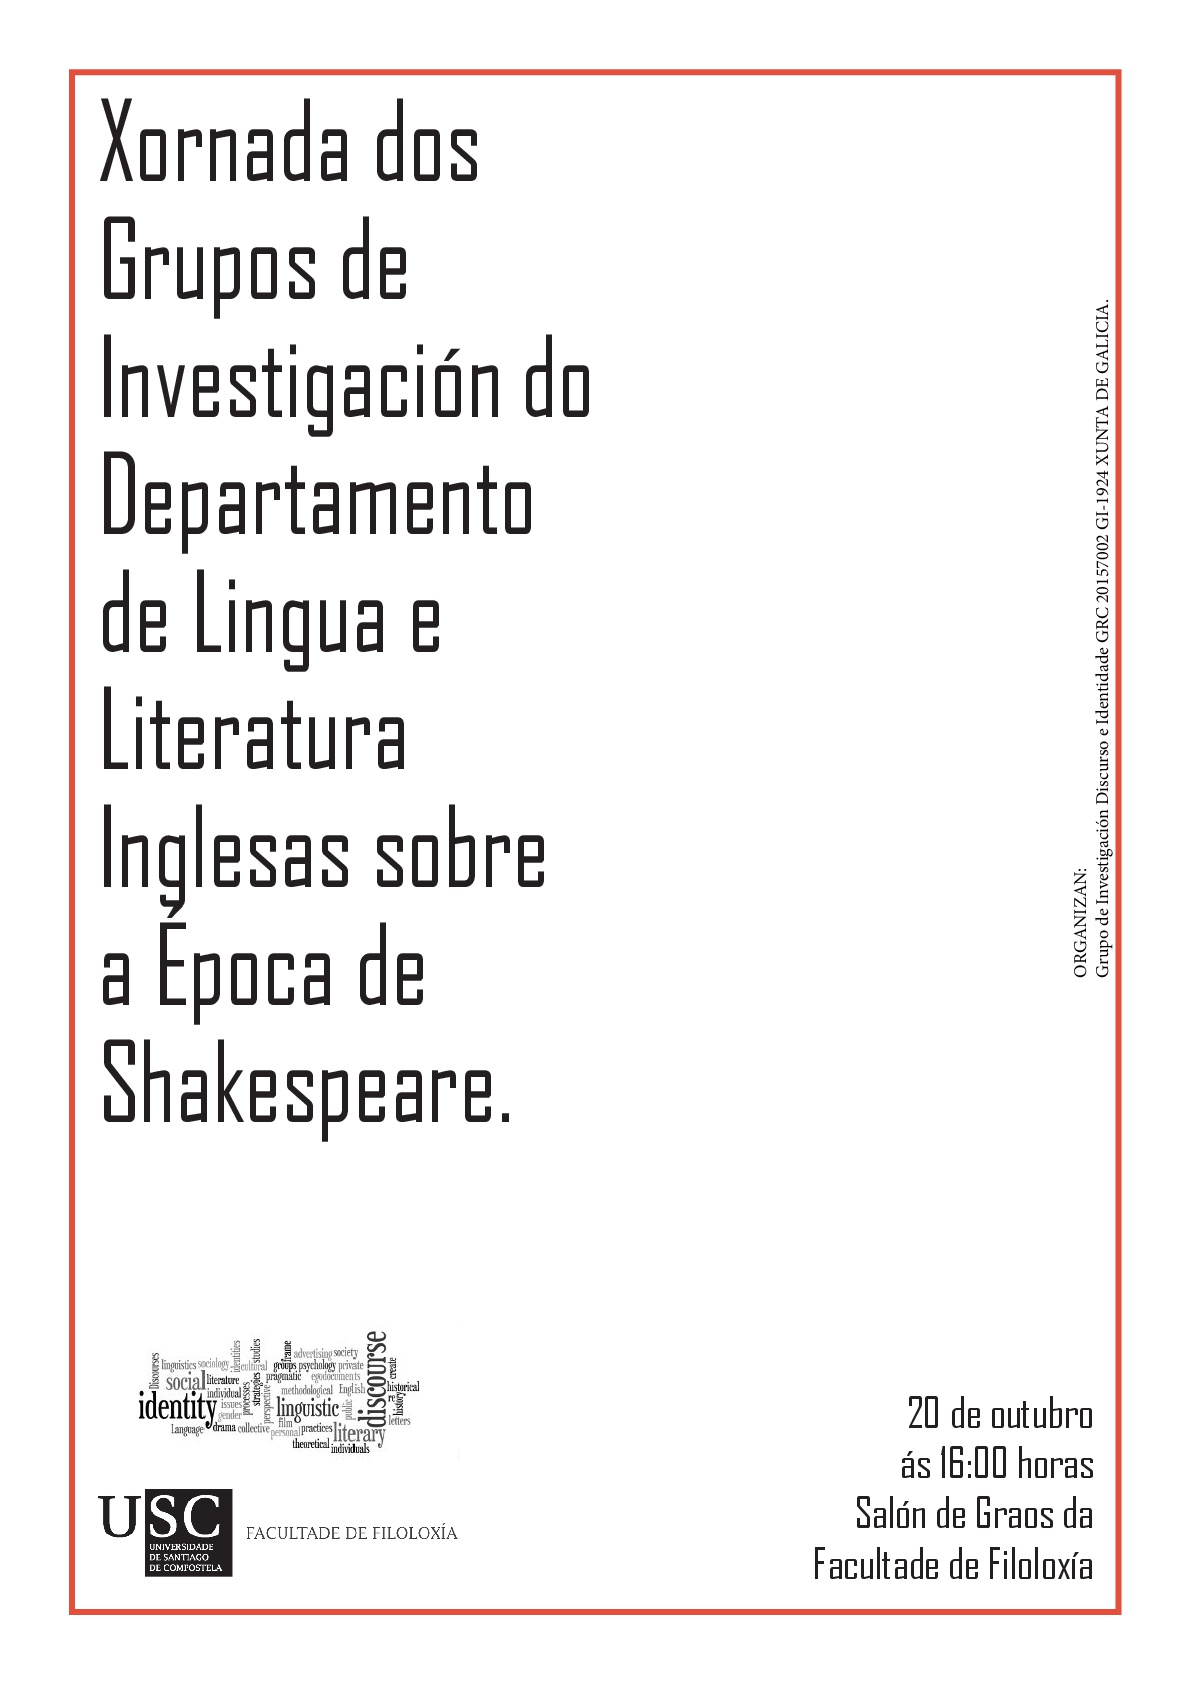 On 20 october the research groups in the department of english and german studies usc host a series of lectures on shakespeare